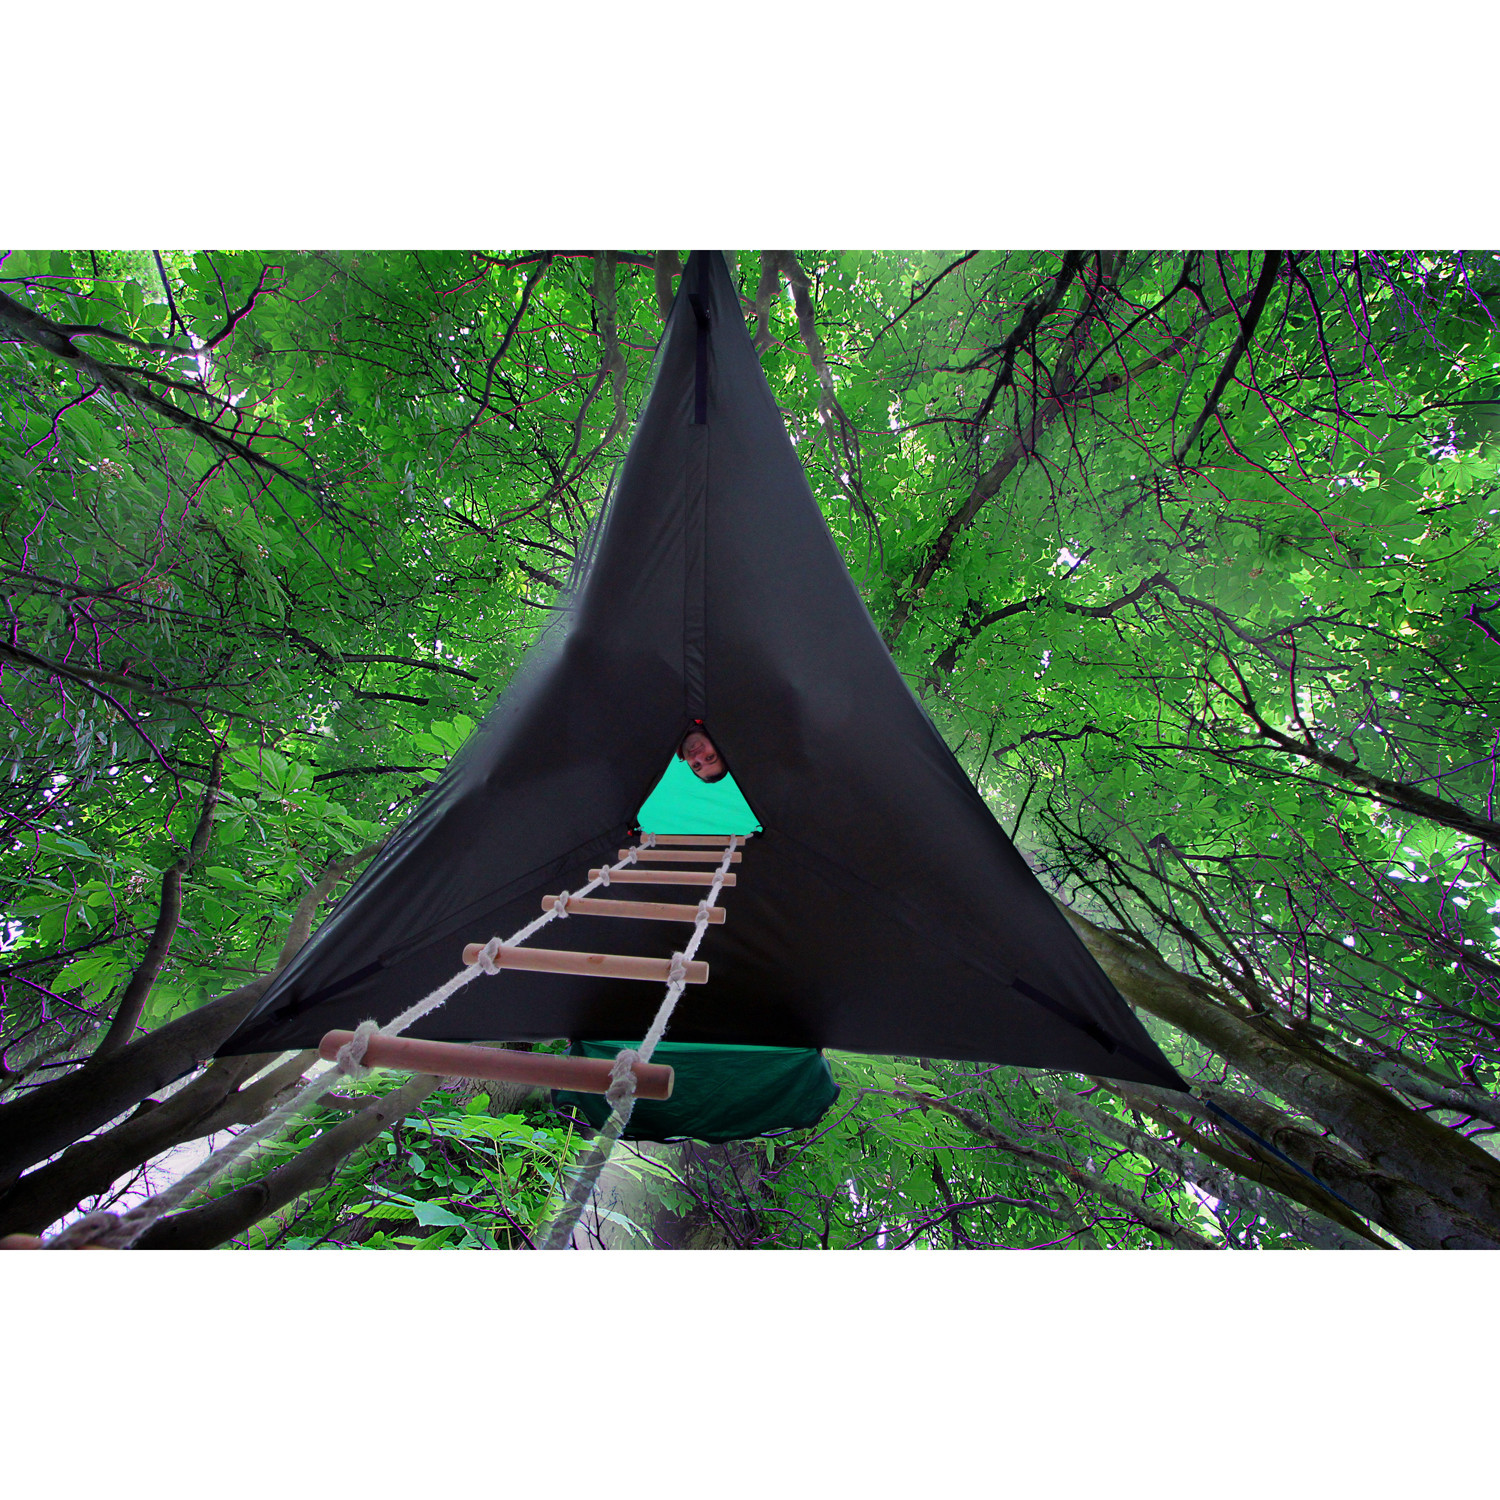 Tentsile // Stingray Tree Tent // Camouflage Flysheet (Forest Green)  sc 1 st  Touch of Modern & Tentsile // Stingray Tree Tent // Camouflage Flysheet (Forest ...